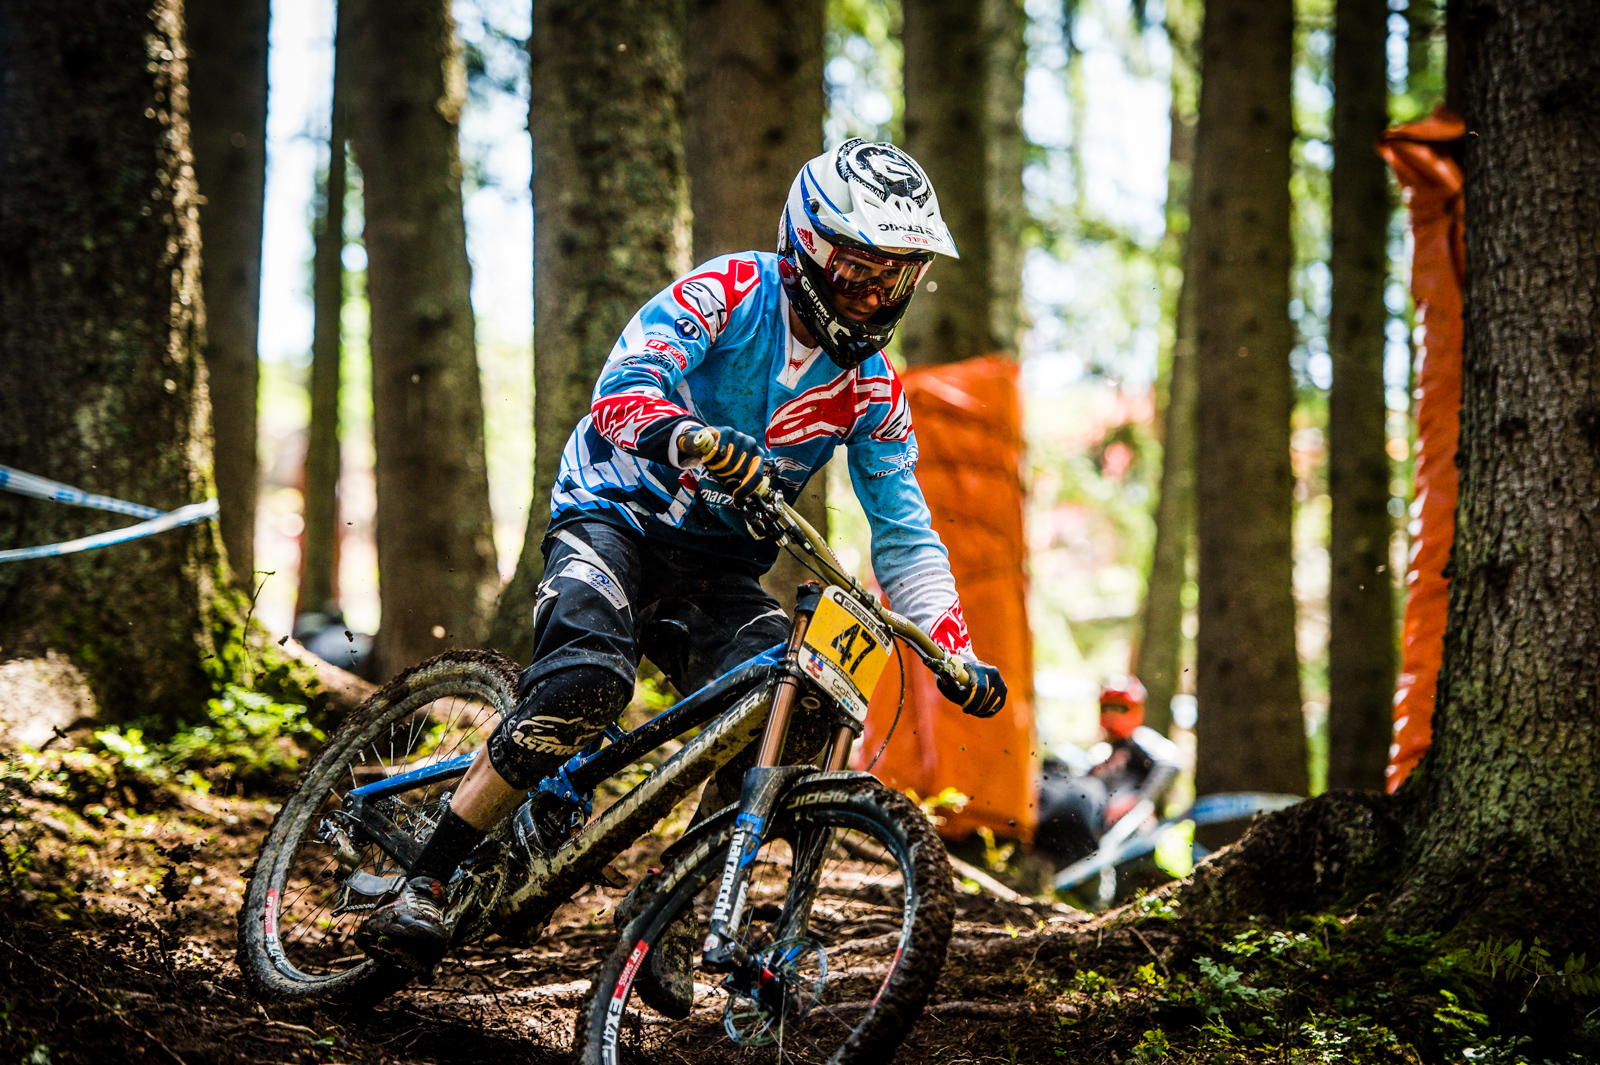 The sketchy woods ruined Innes' chances of a top result in Austria,but he was still the talk of the town, looking wild in plenty of sections.